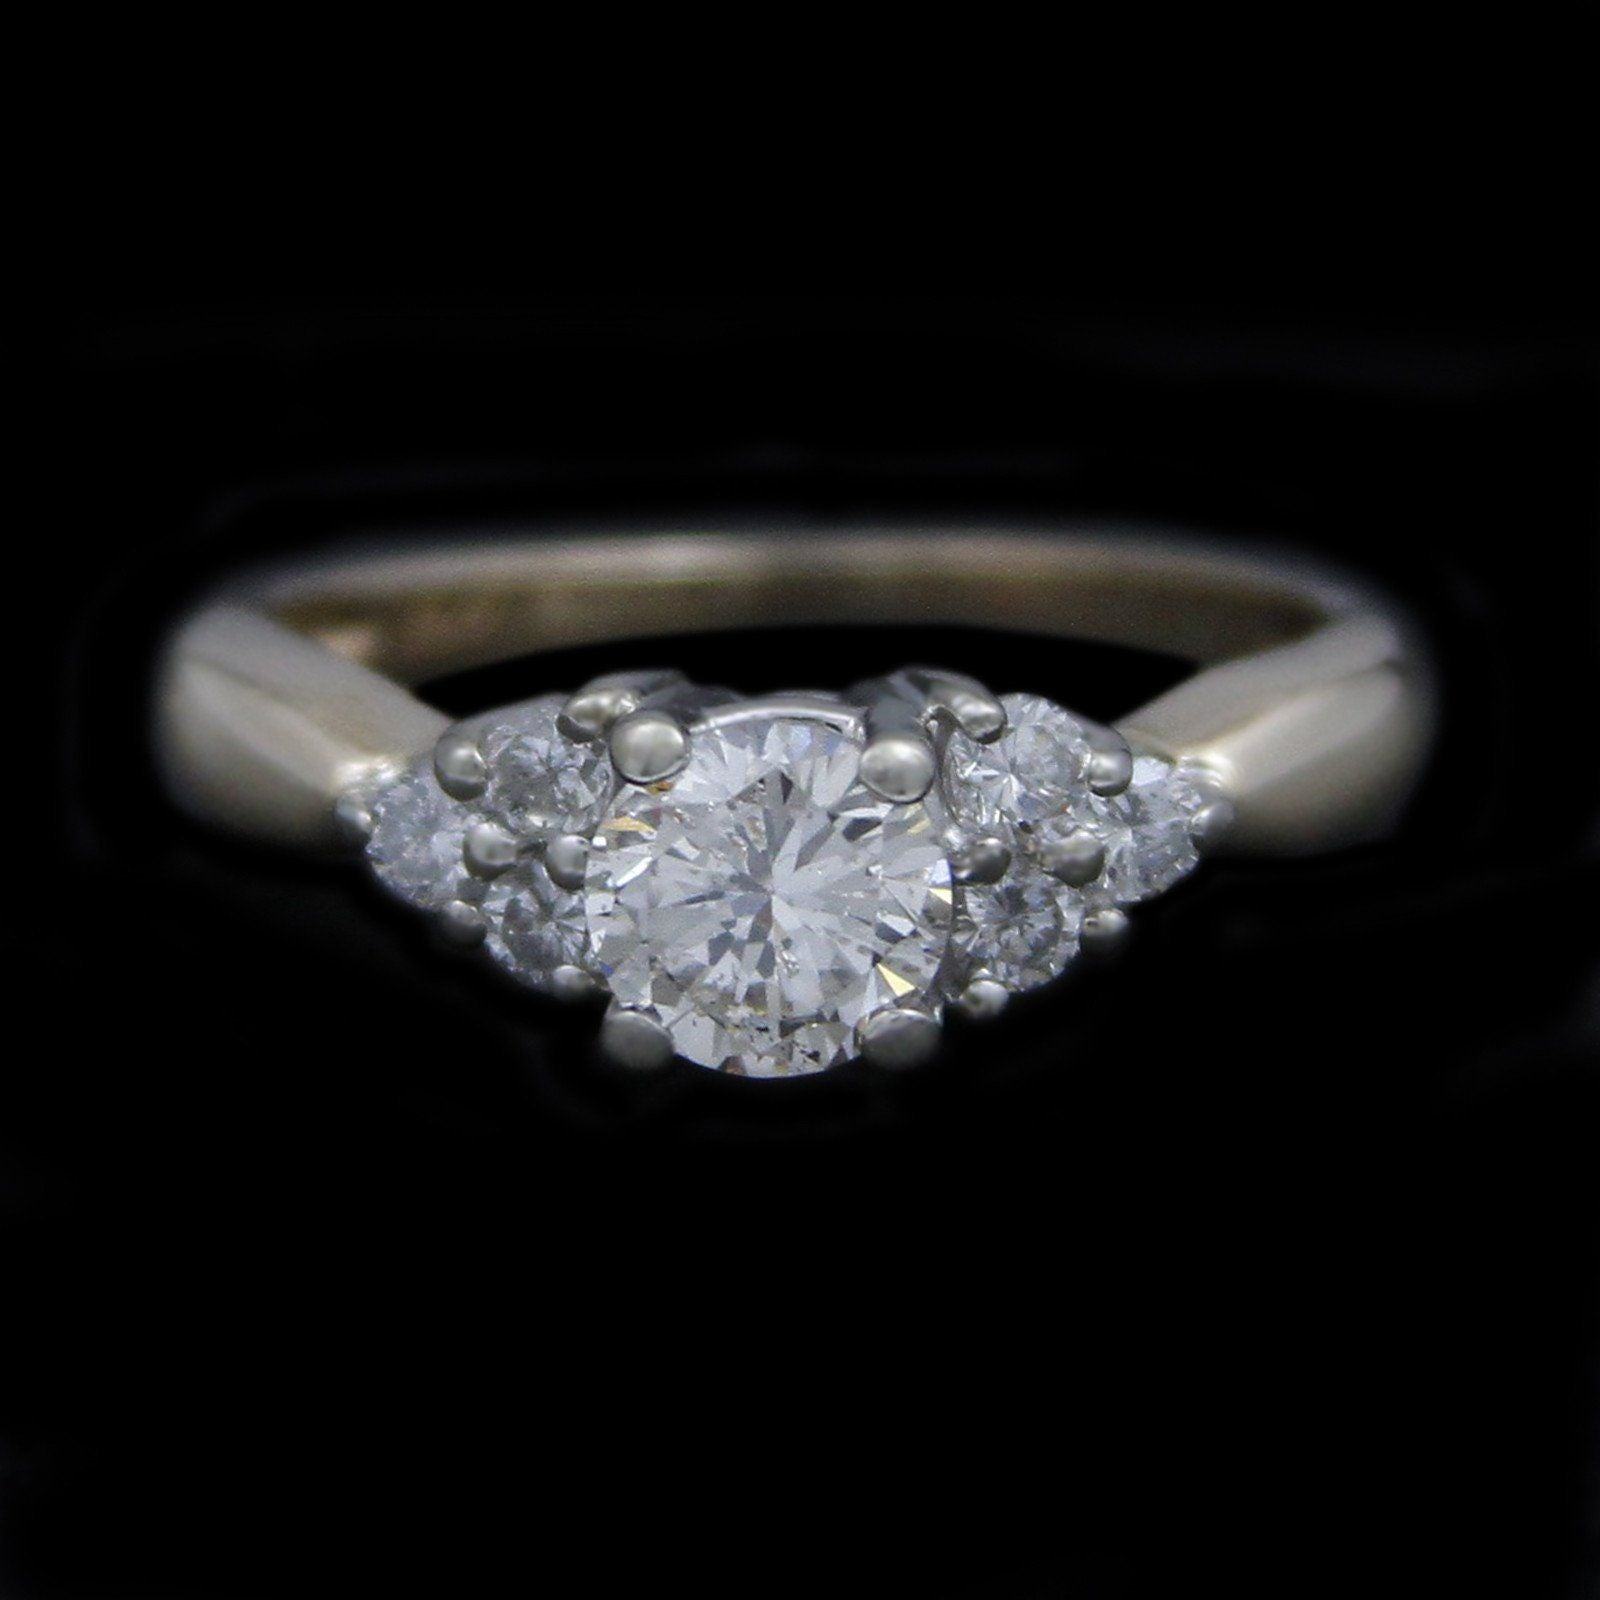 Round Brilliant Cut Diamond Engagement Ring with 3 Round Diamonds on Each Side